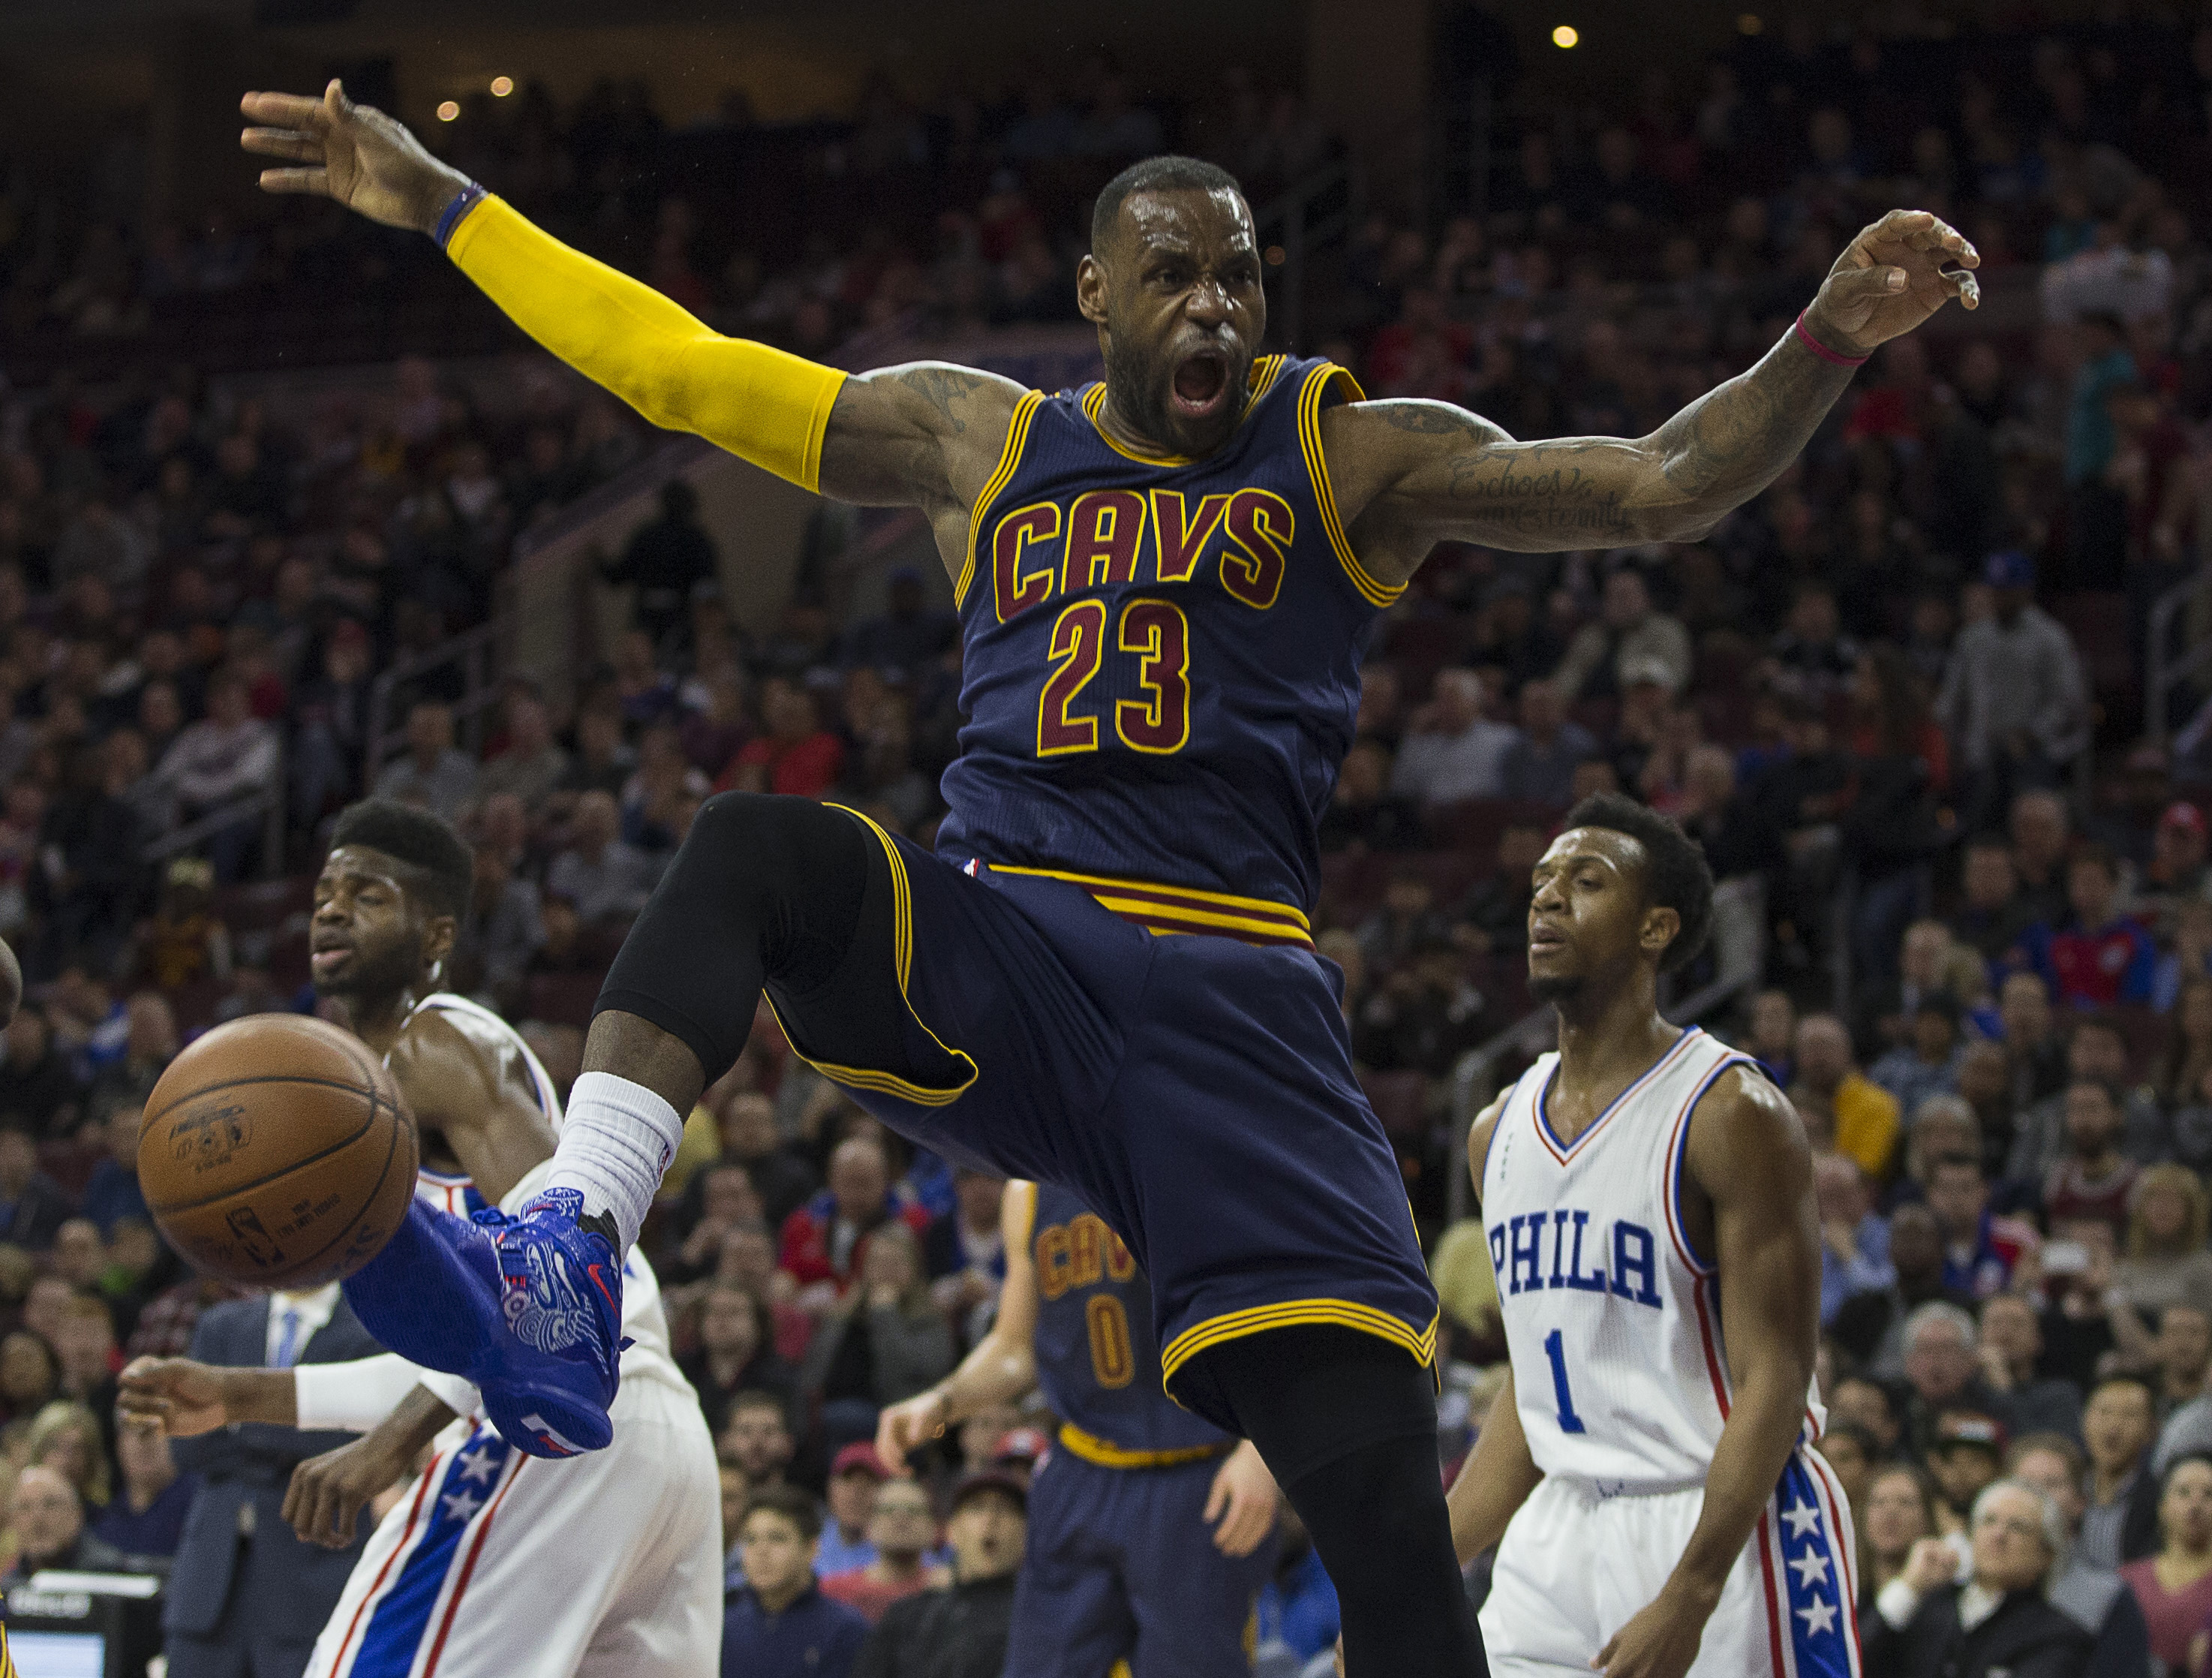 PHILADELPHIA, PA - JANUARY 10: LeBron James #23 of the Cleveland Cavaliers reacts after a dunk against the Philadelphia 76ers on January 10, 2016 at the Wells Fargo Center in Philadelphia, Pennsylvania. (Photo by Mitchell Leff/Getty Images)